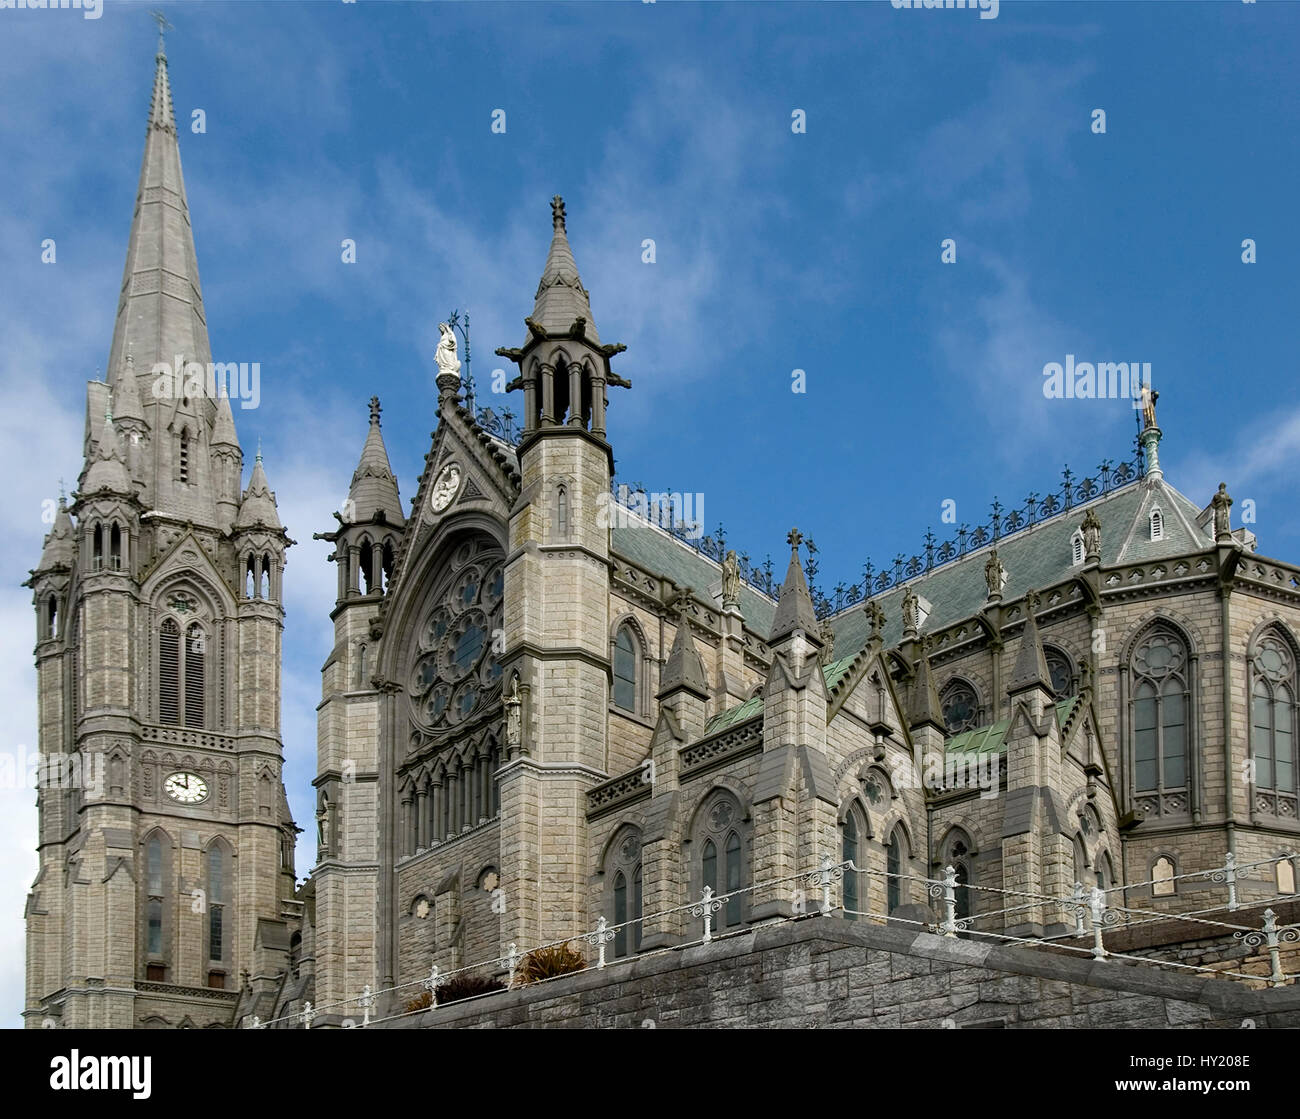 This stock photo shows the St.Colemans Cathedral of Cobh an small Southern Irish coastal city near Cork. The image Stock Photo